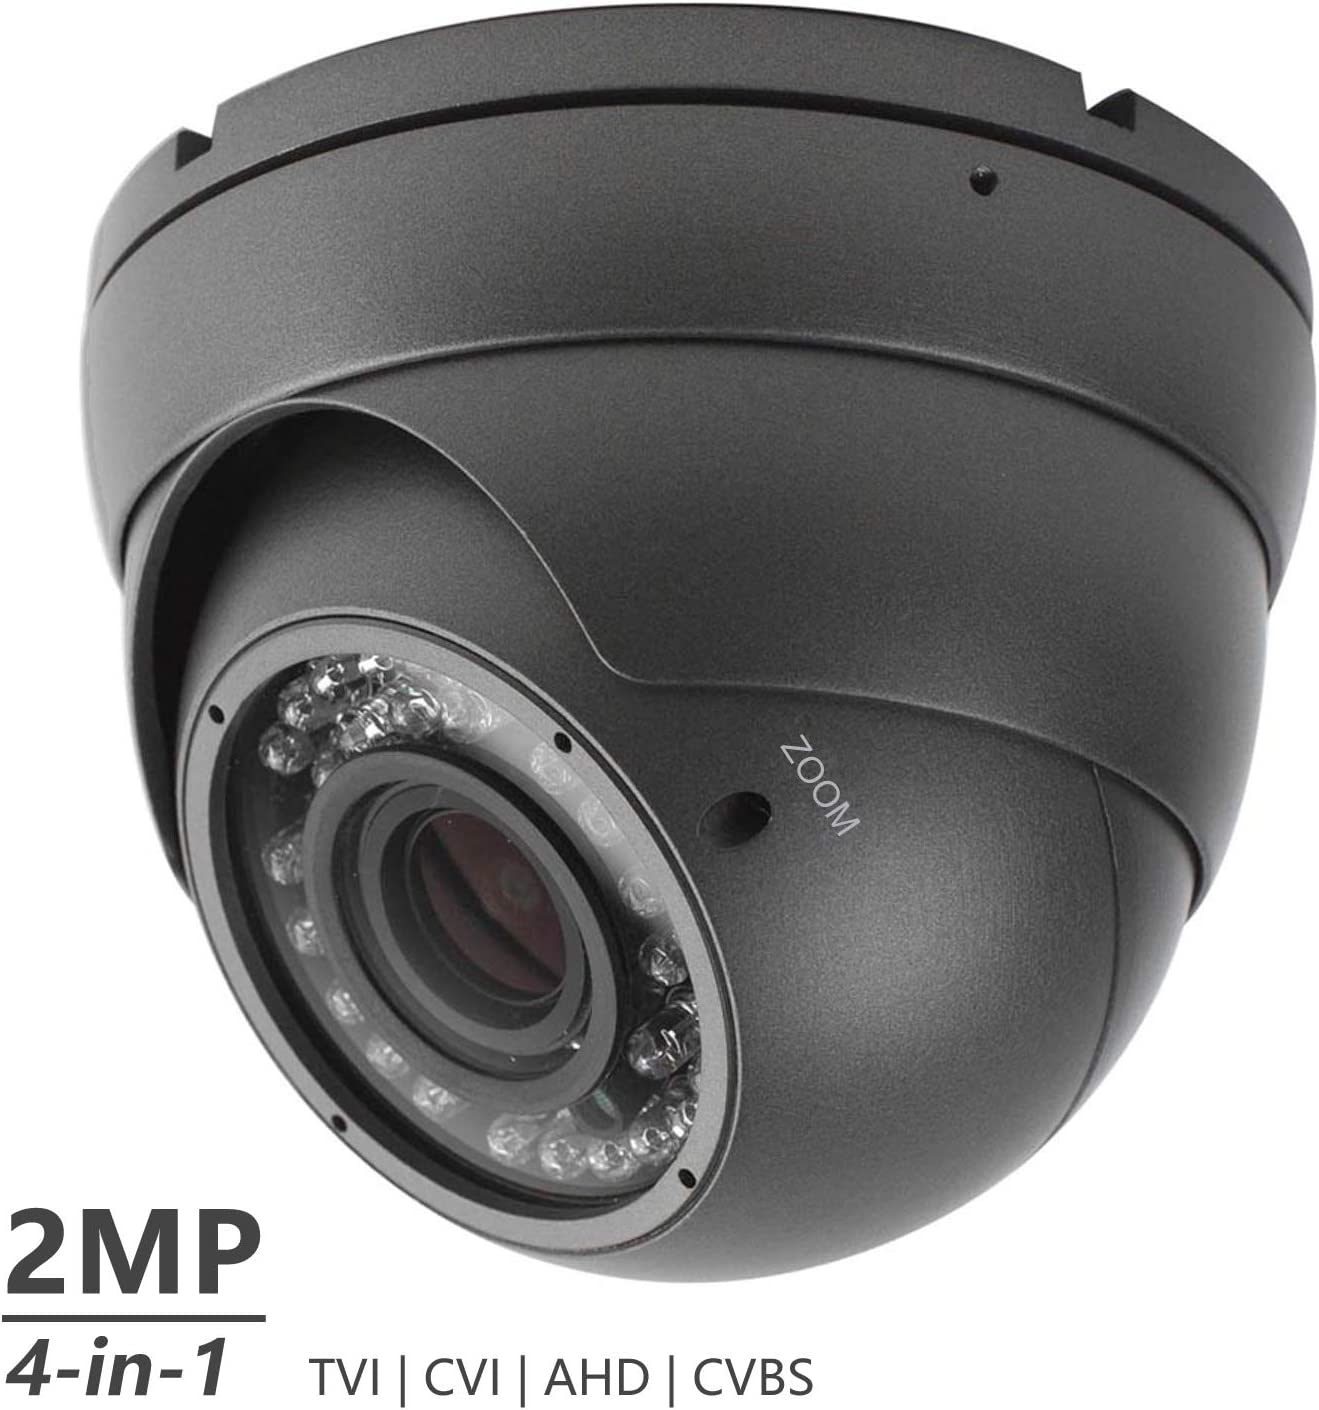 Analog CCTV Camera HD 1080P 4-in-1 (TVI/AHD/CVI/CVBS) Security Dome Camera, 2.8mm-12mm Manual Focus/Zoom Varifocal Lens, Weatherproof Metal Housing 36 IR-LEDs Day & Night Monitoring (Black)